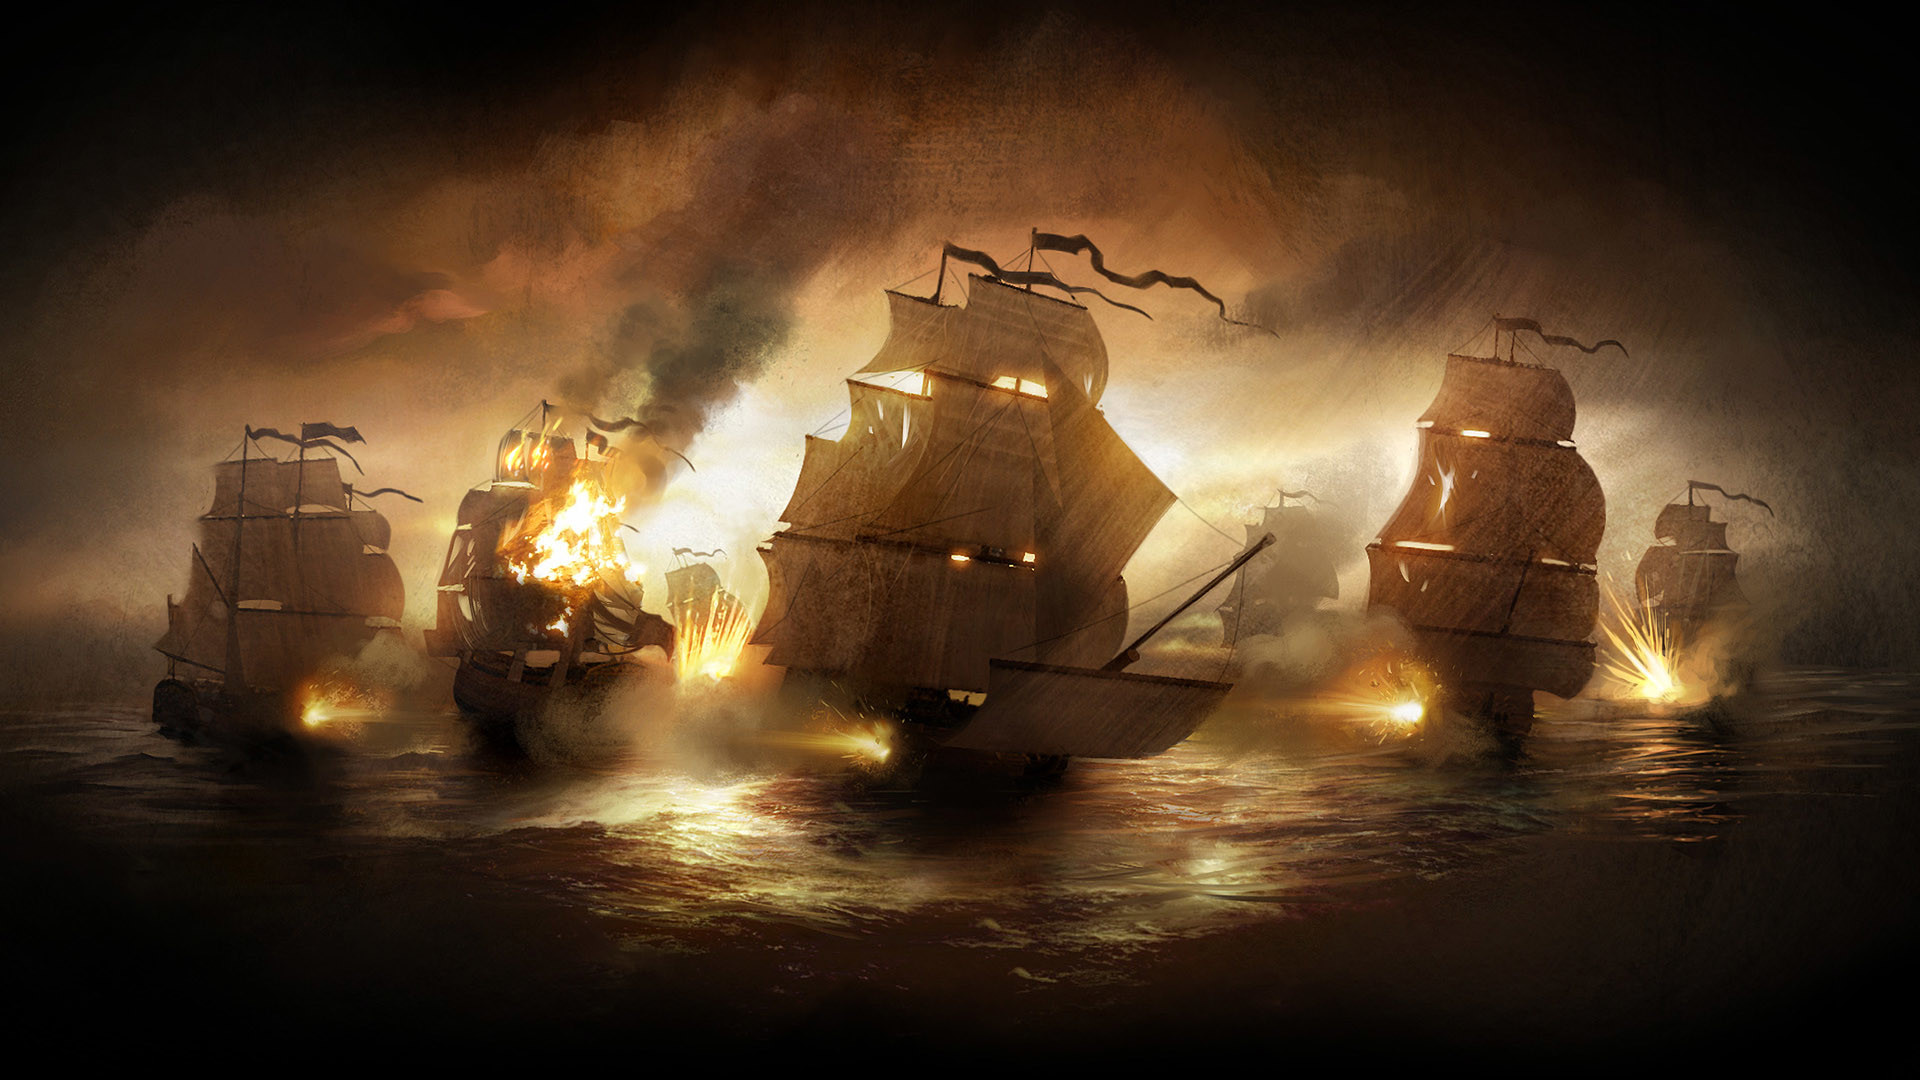 pirate ship wallpapers for desktop (65+ images)